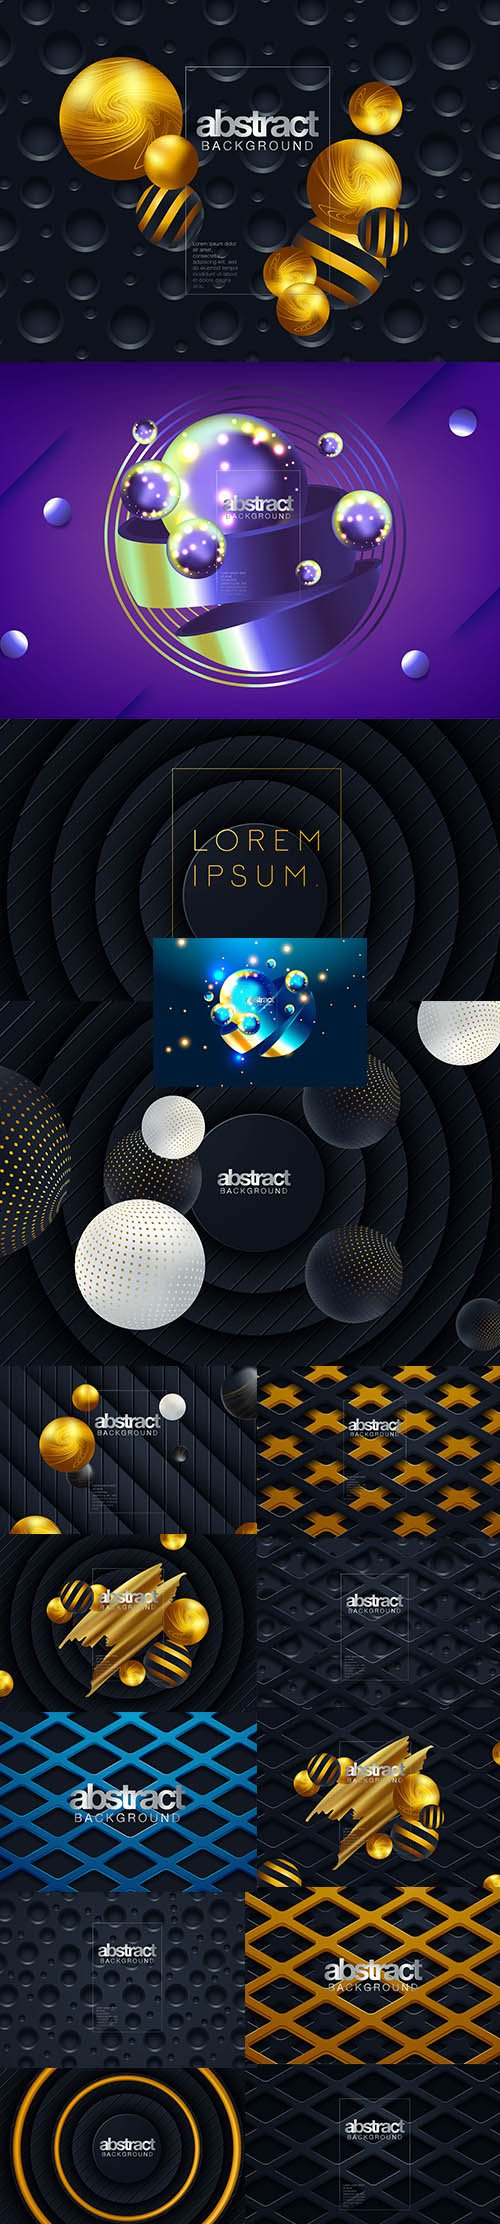 Abstract 3D Colorful Geometric Background Set